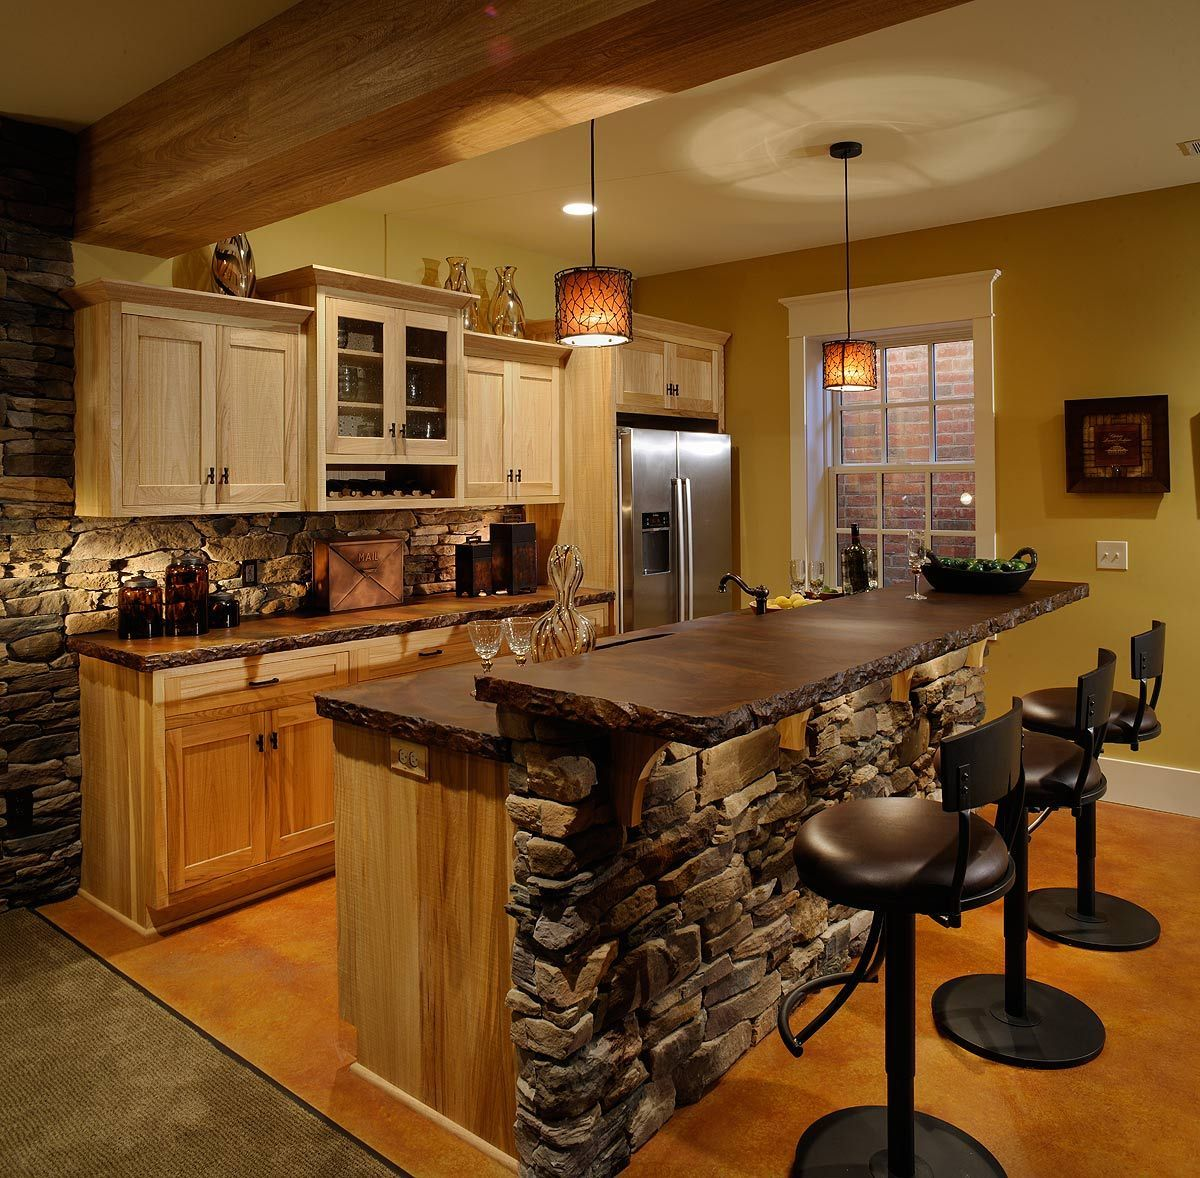 Unordinary Italian Rustic Kitchen Decorating Ideas To Inspire Your Home 32